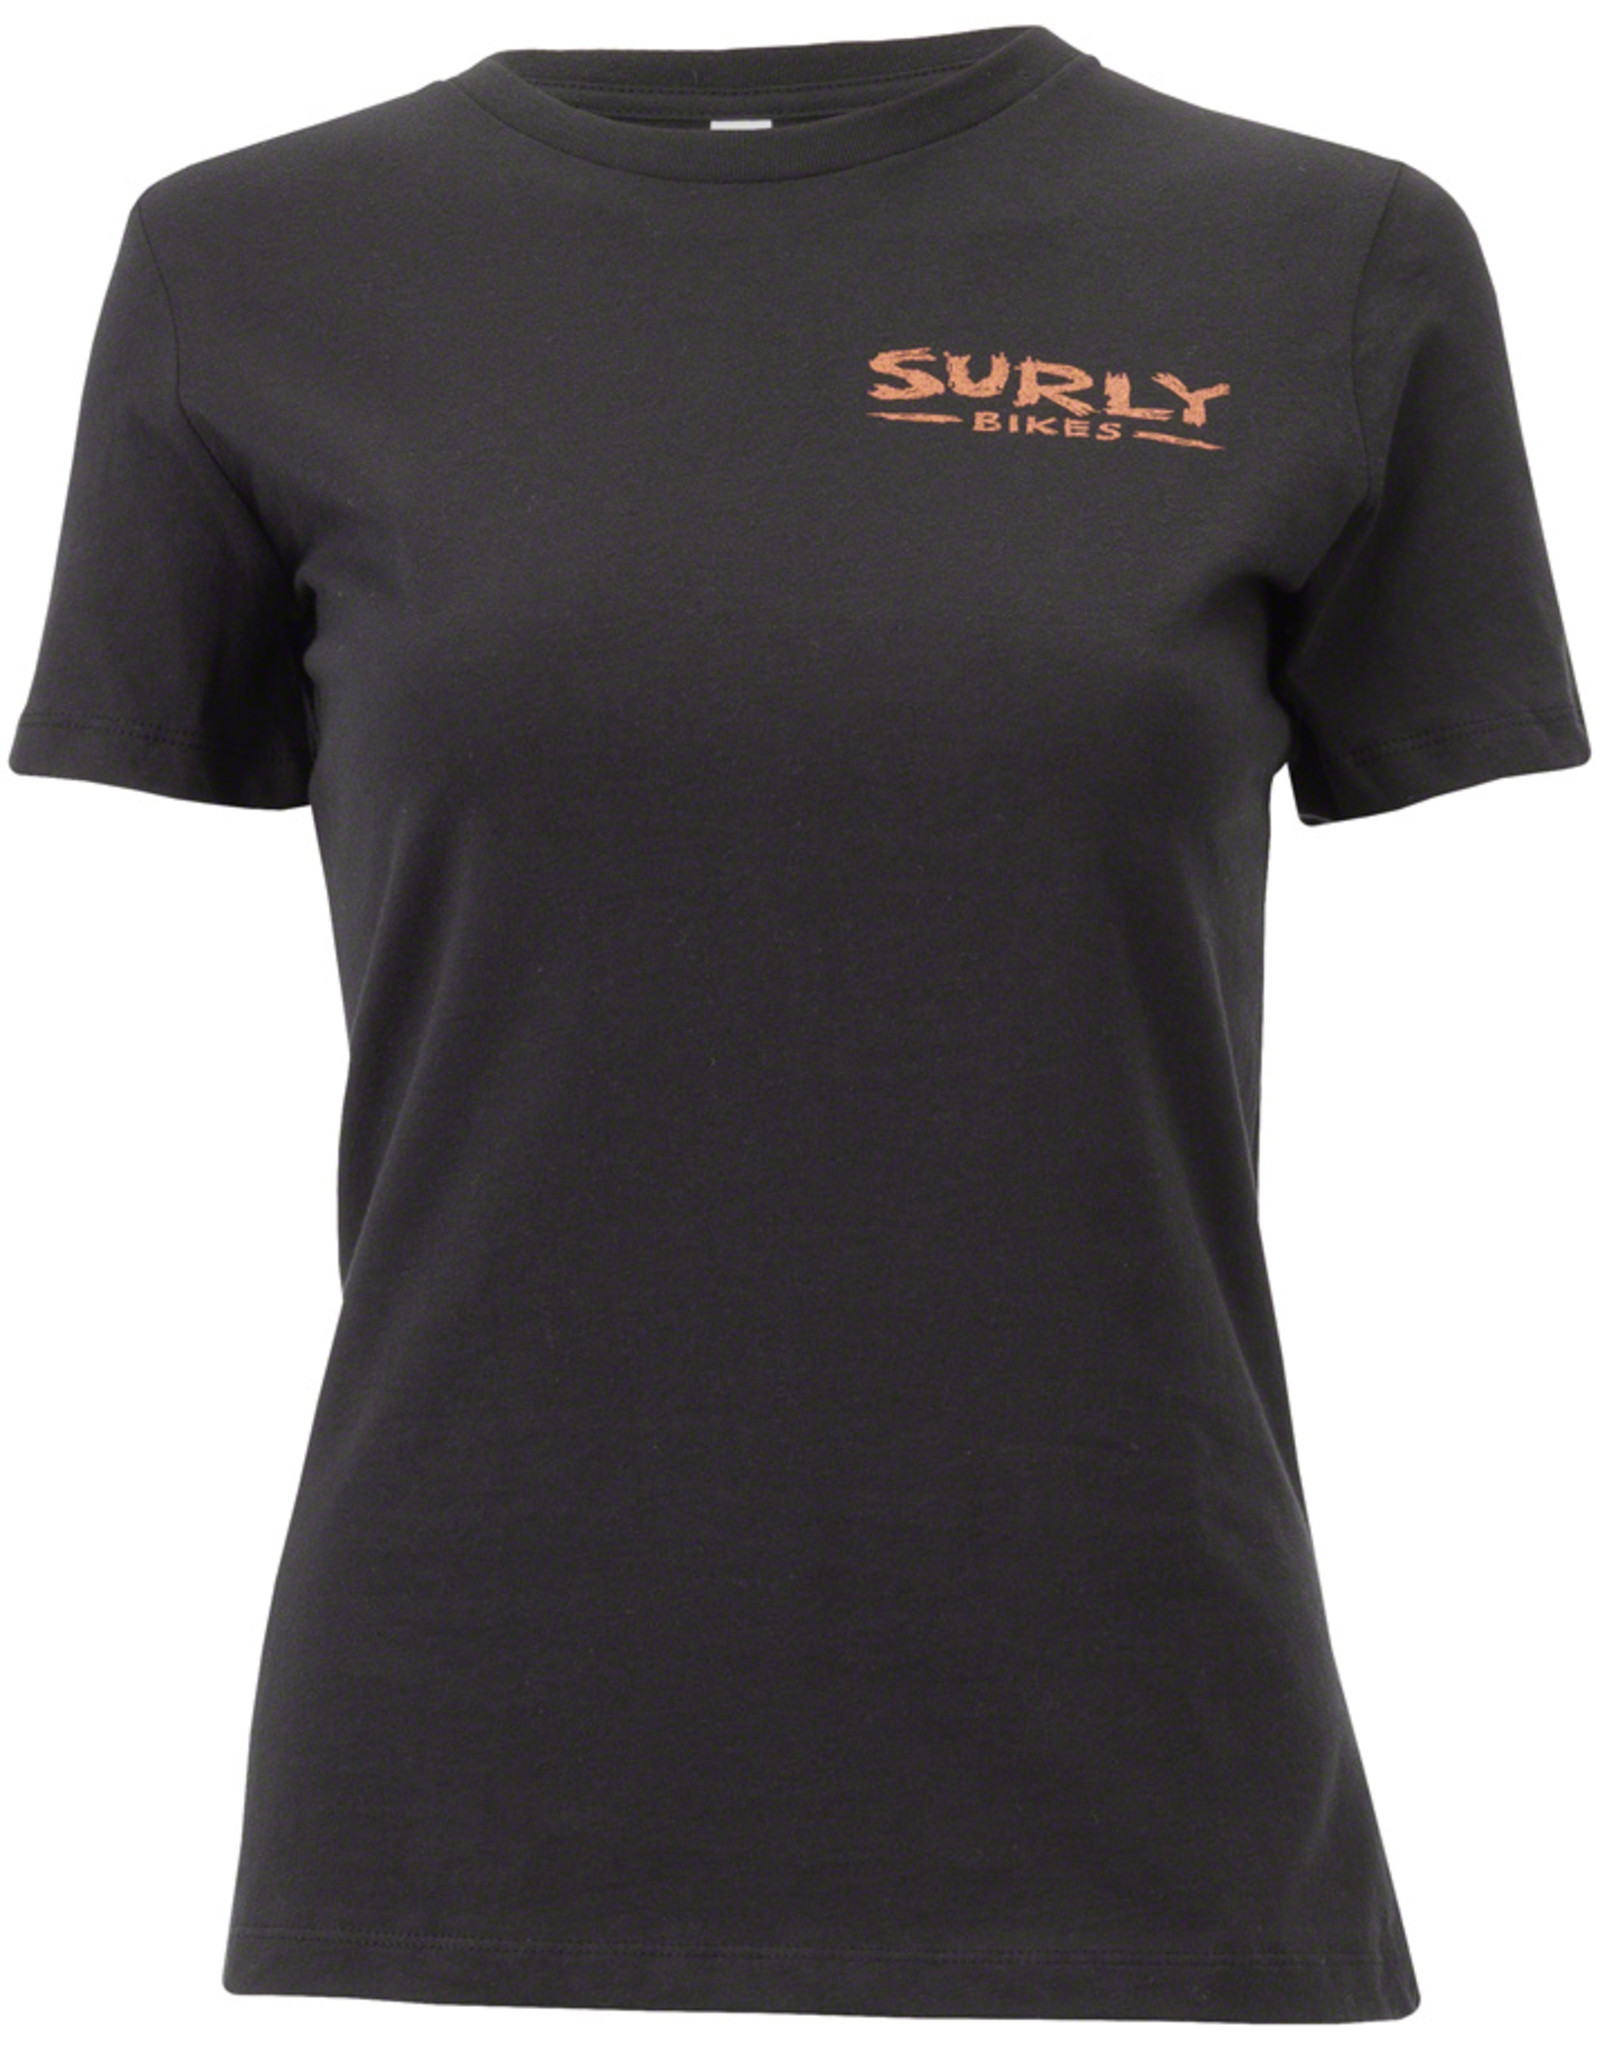 Surly Surly Space Station Women's T-Shirt